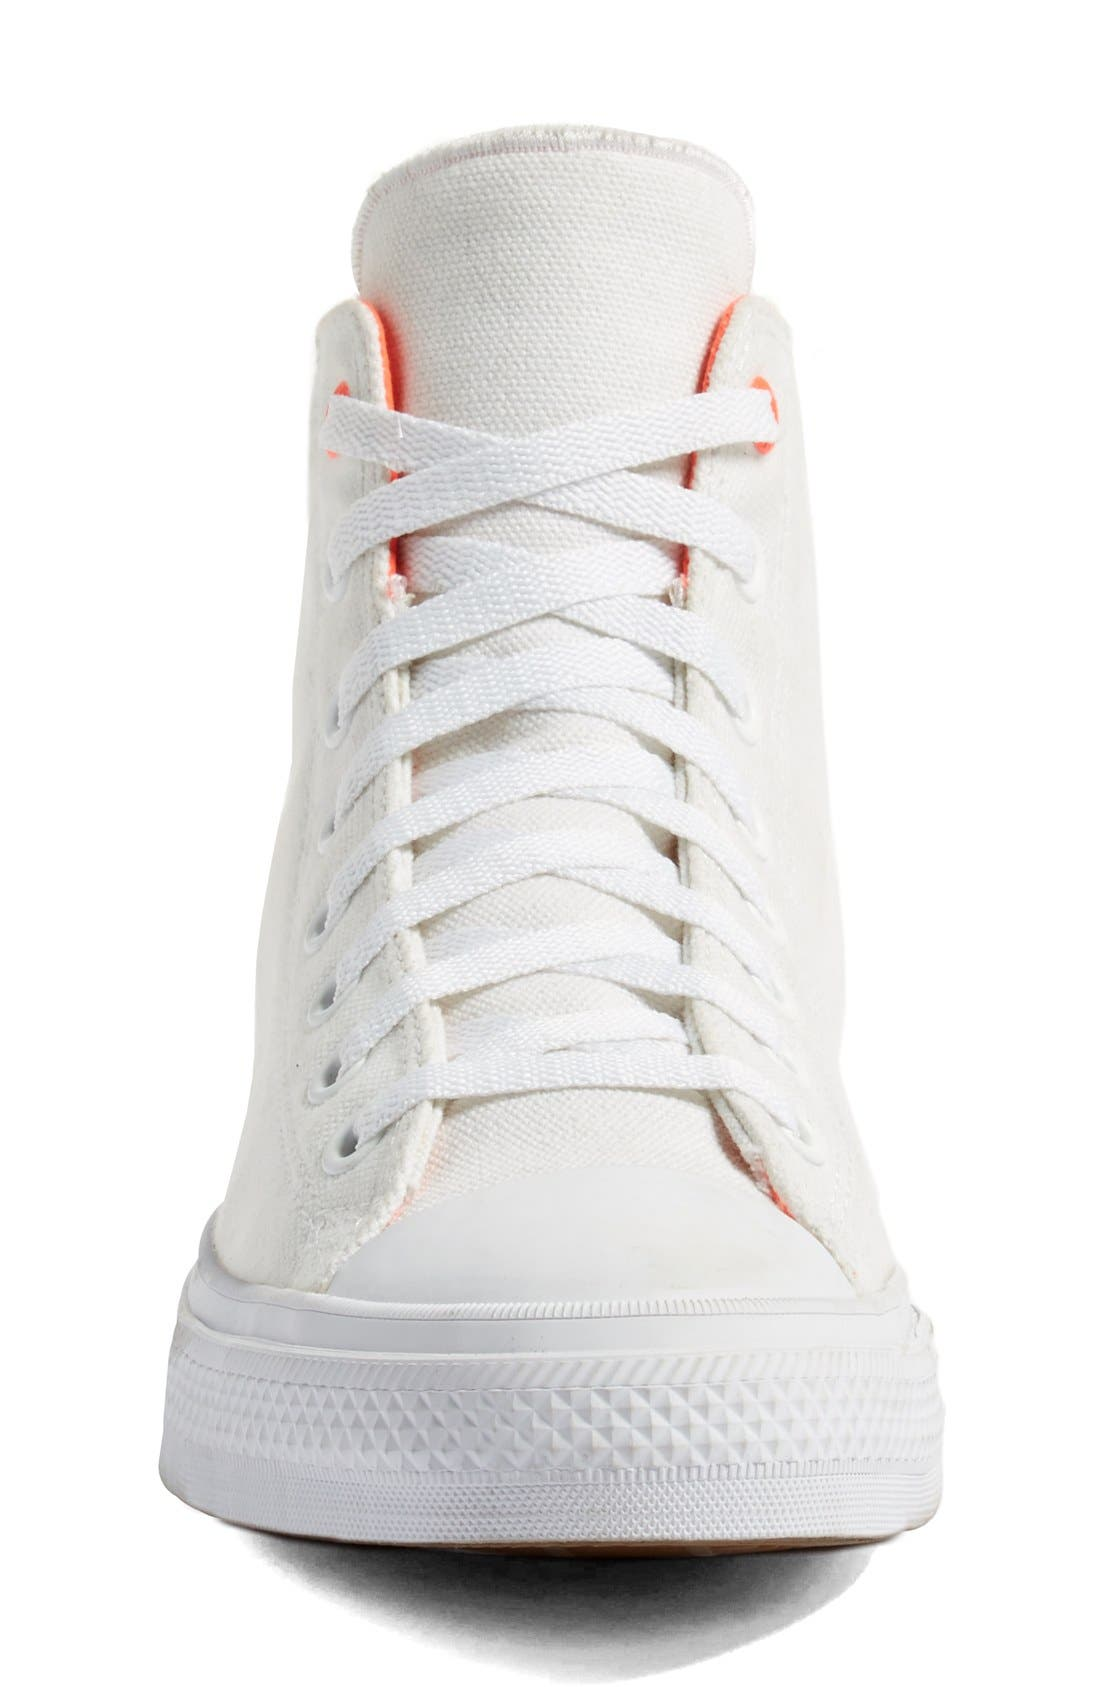 Chuck Taylor<sup>®</sup> All Star<sup>®</sup> II 'Shield' Water Repellent High Top Sneaker,                             Alternate thumbnail 3, color,                             White/ Lava/ Gum